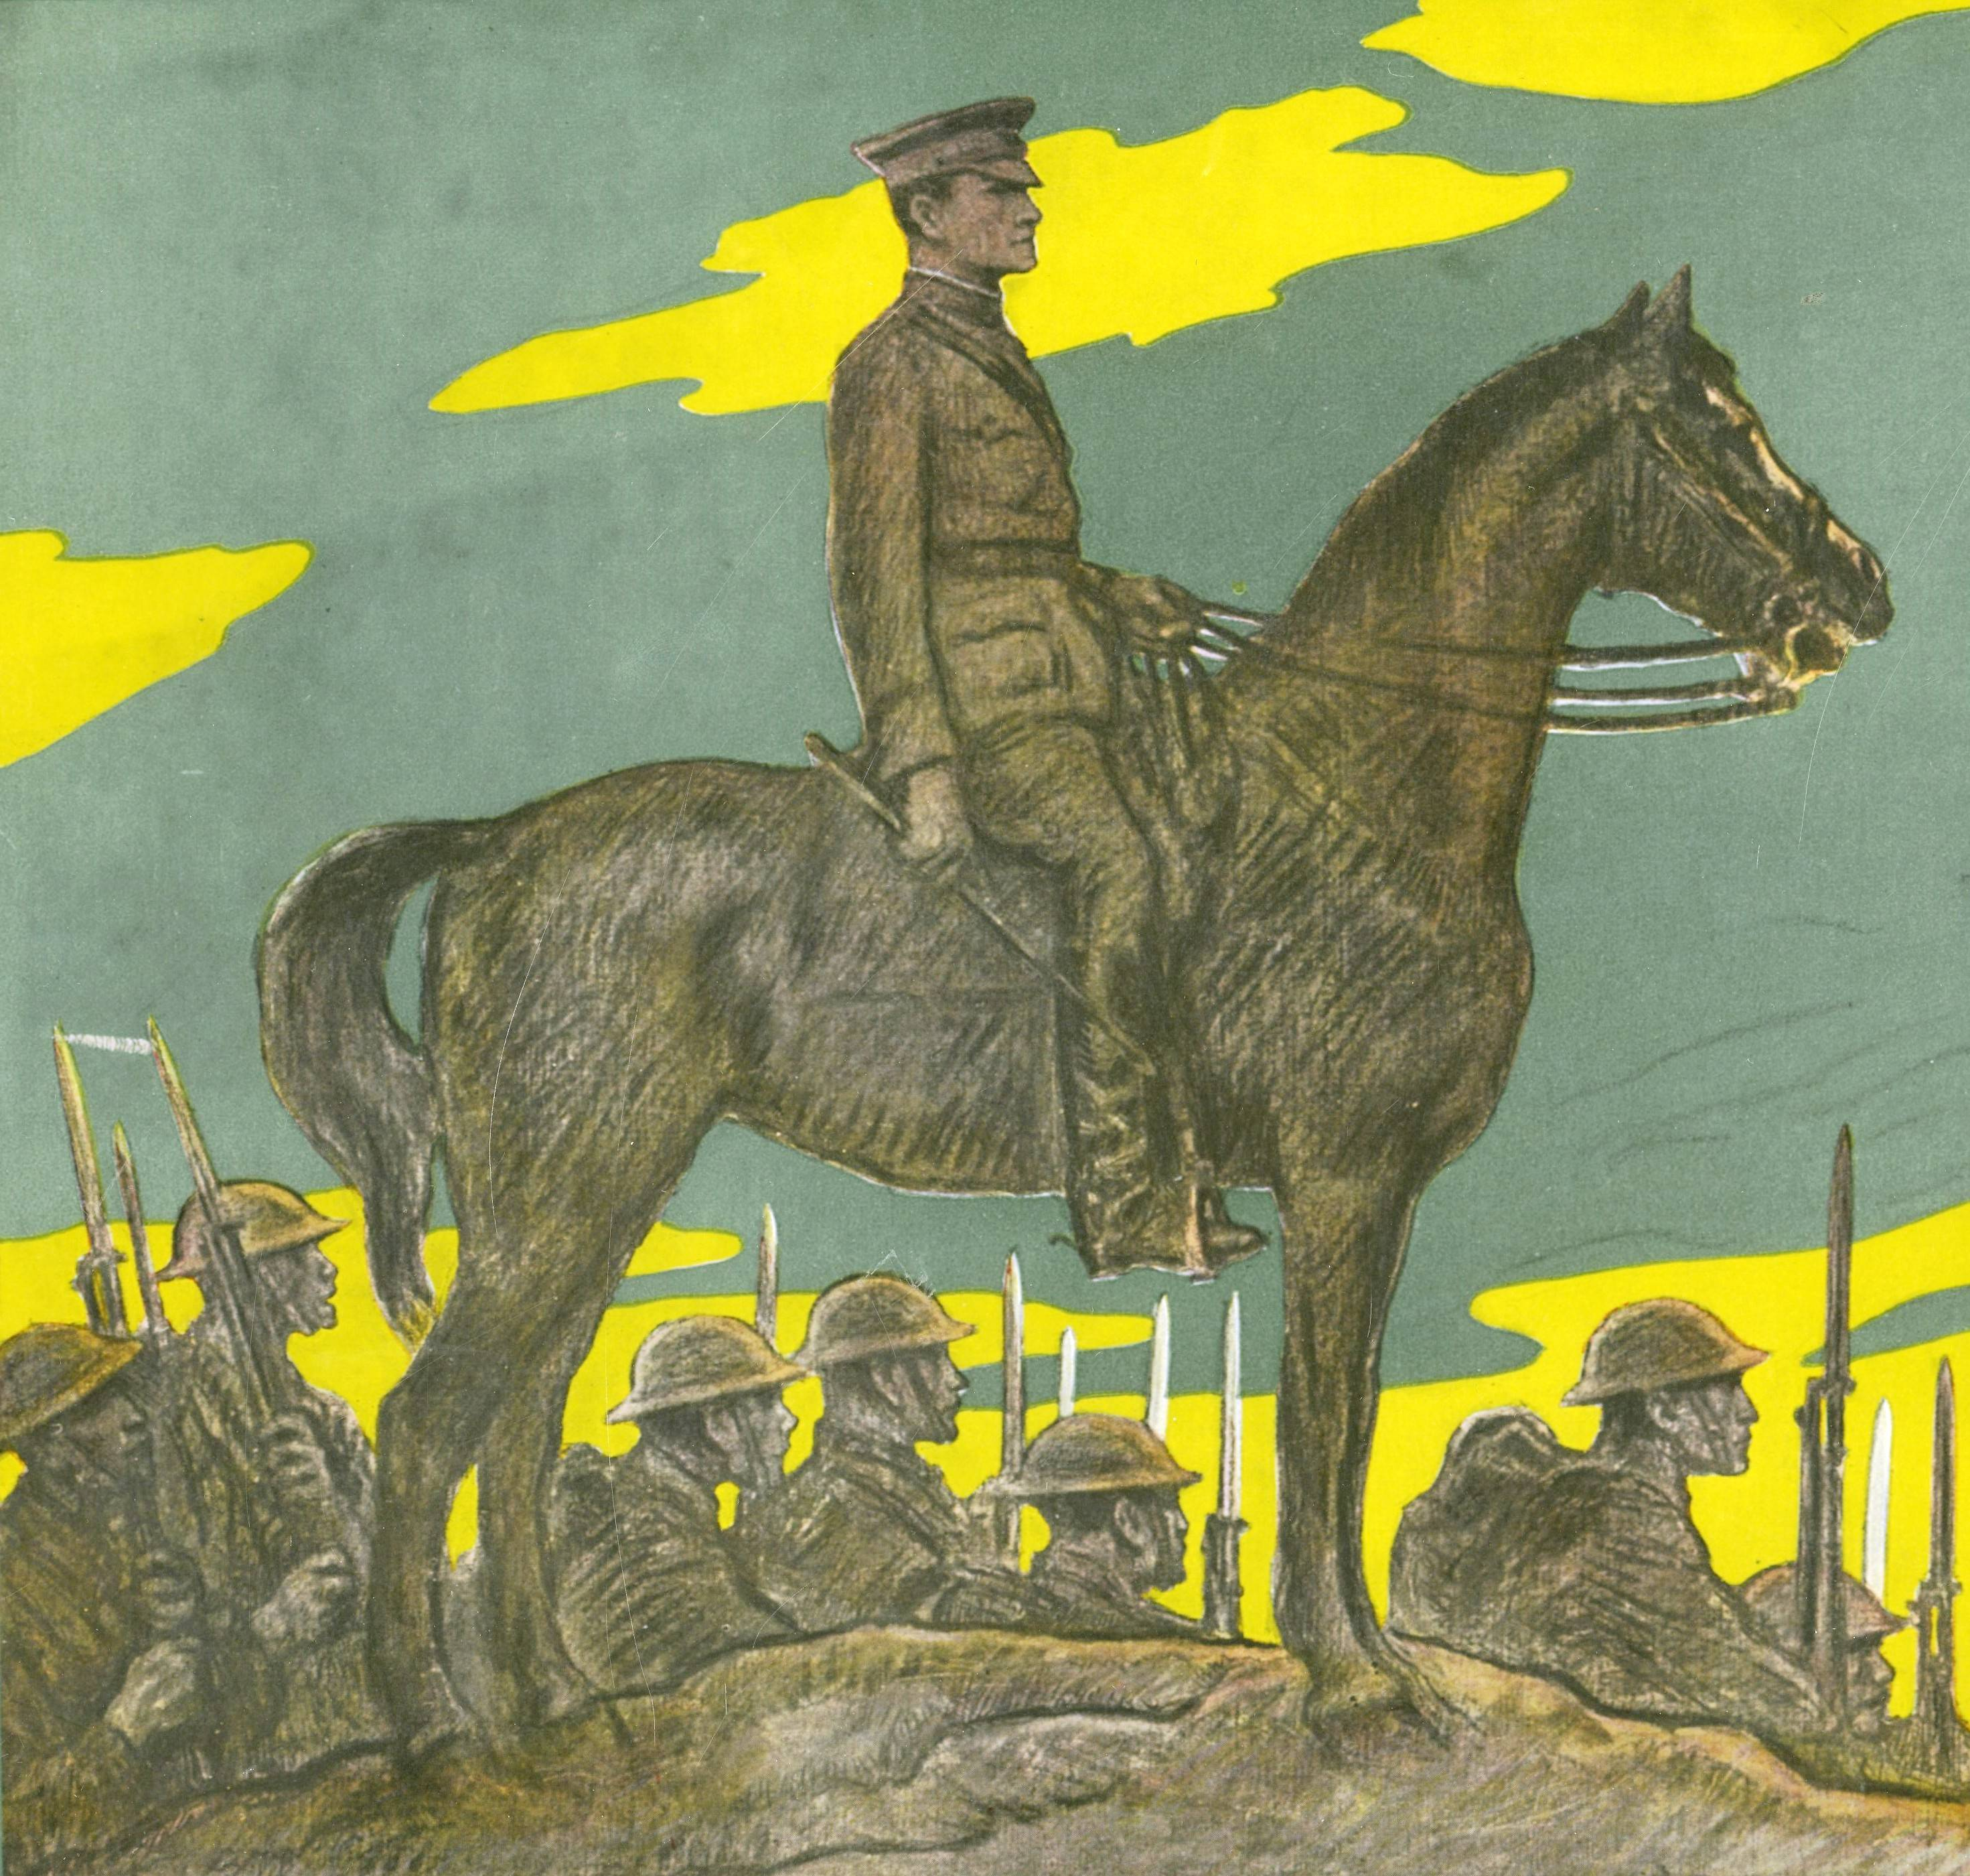 e87198342a53d31bd2a8_MCHS_Detail_from_WWI_United_War_Work_Campaign_poster_courtesy_of_Peter_J._Tamburro.jpg